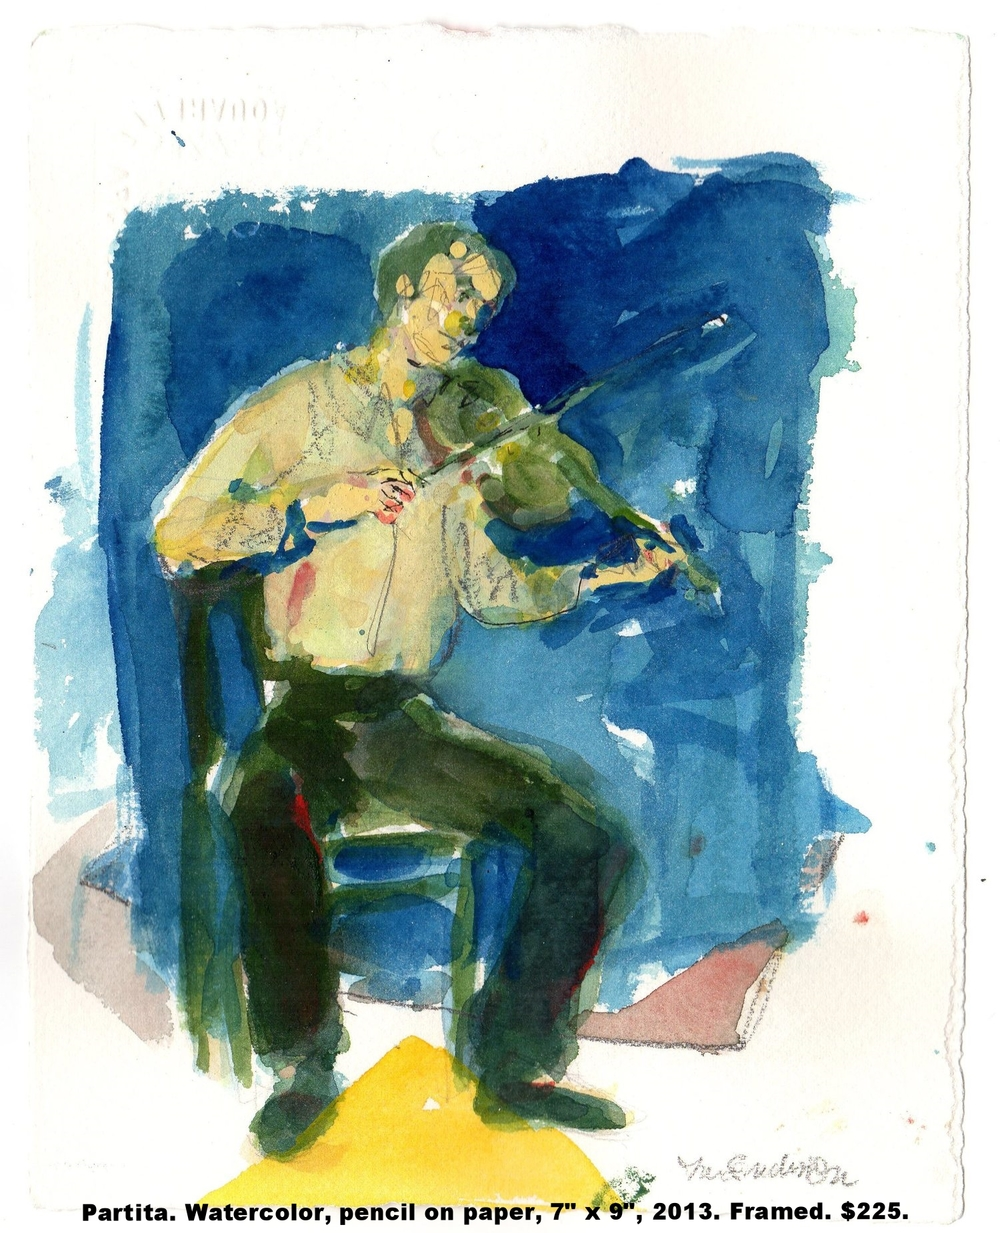 30 Fred Wise Partita Watercolor pen, and pencil on paper 7 in x 9 in 2003.jpg